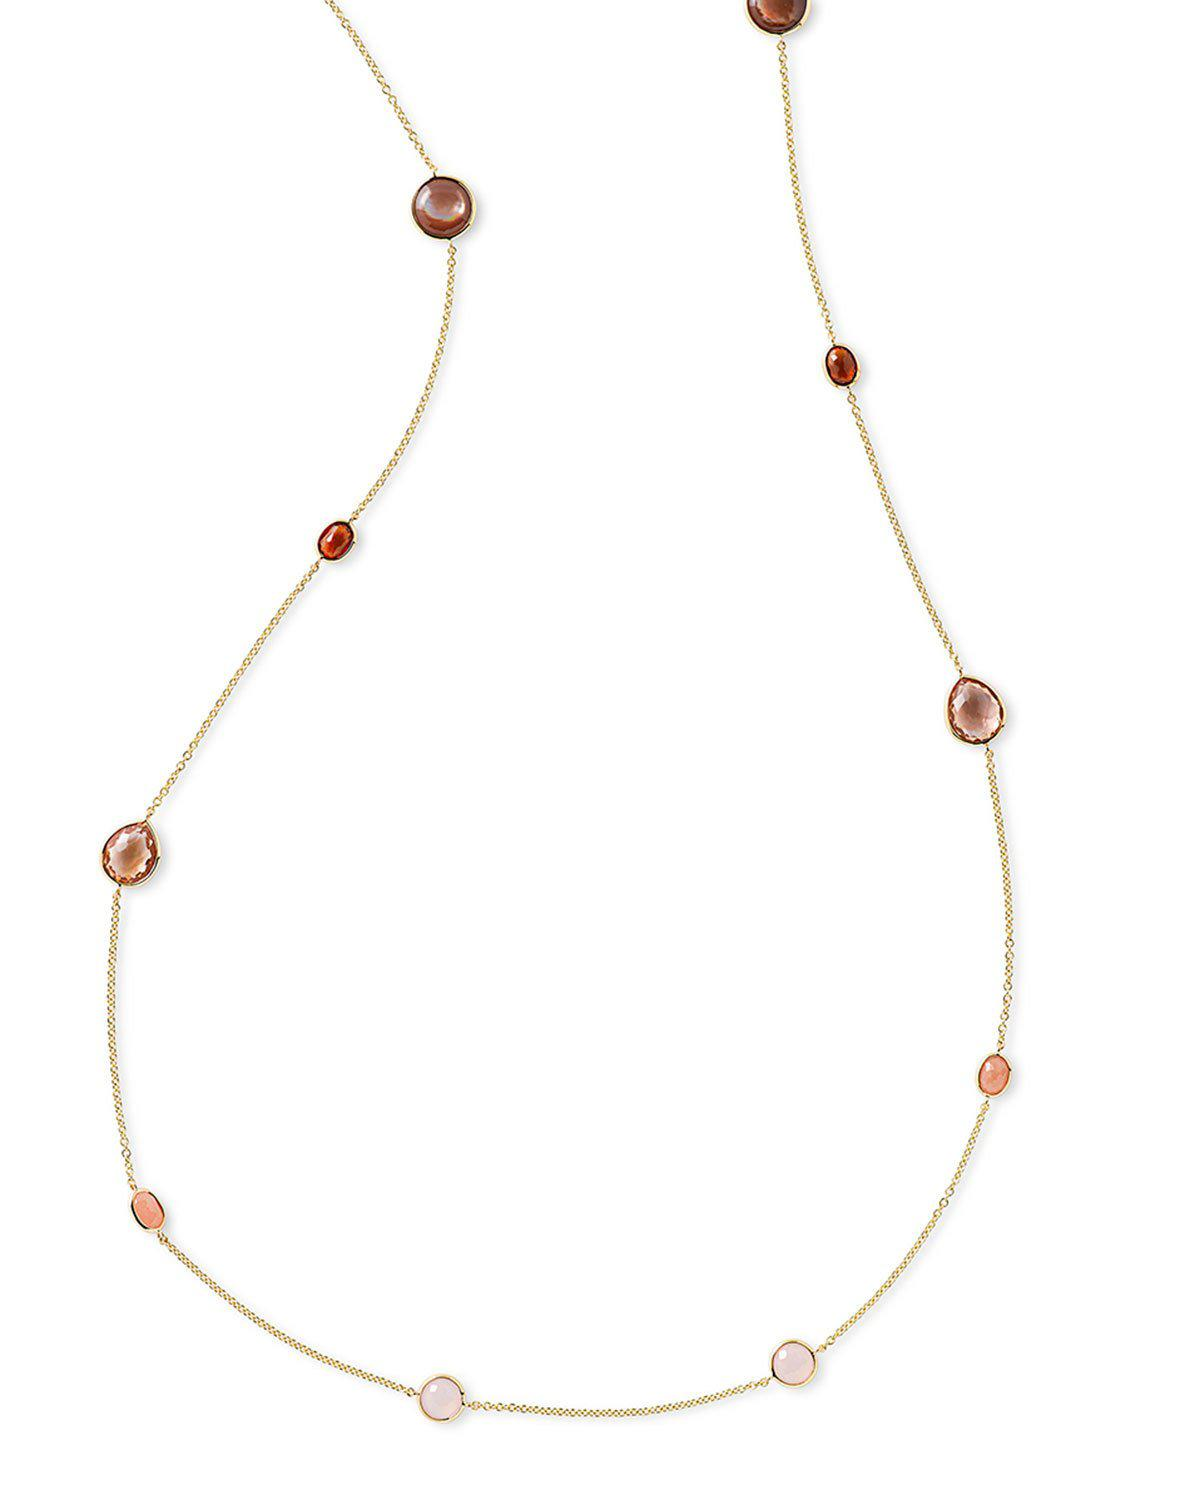 Ippolita 18K Rock Candy Sculpted Crescent Necklace in Midnight Rain 25uhoGn